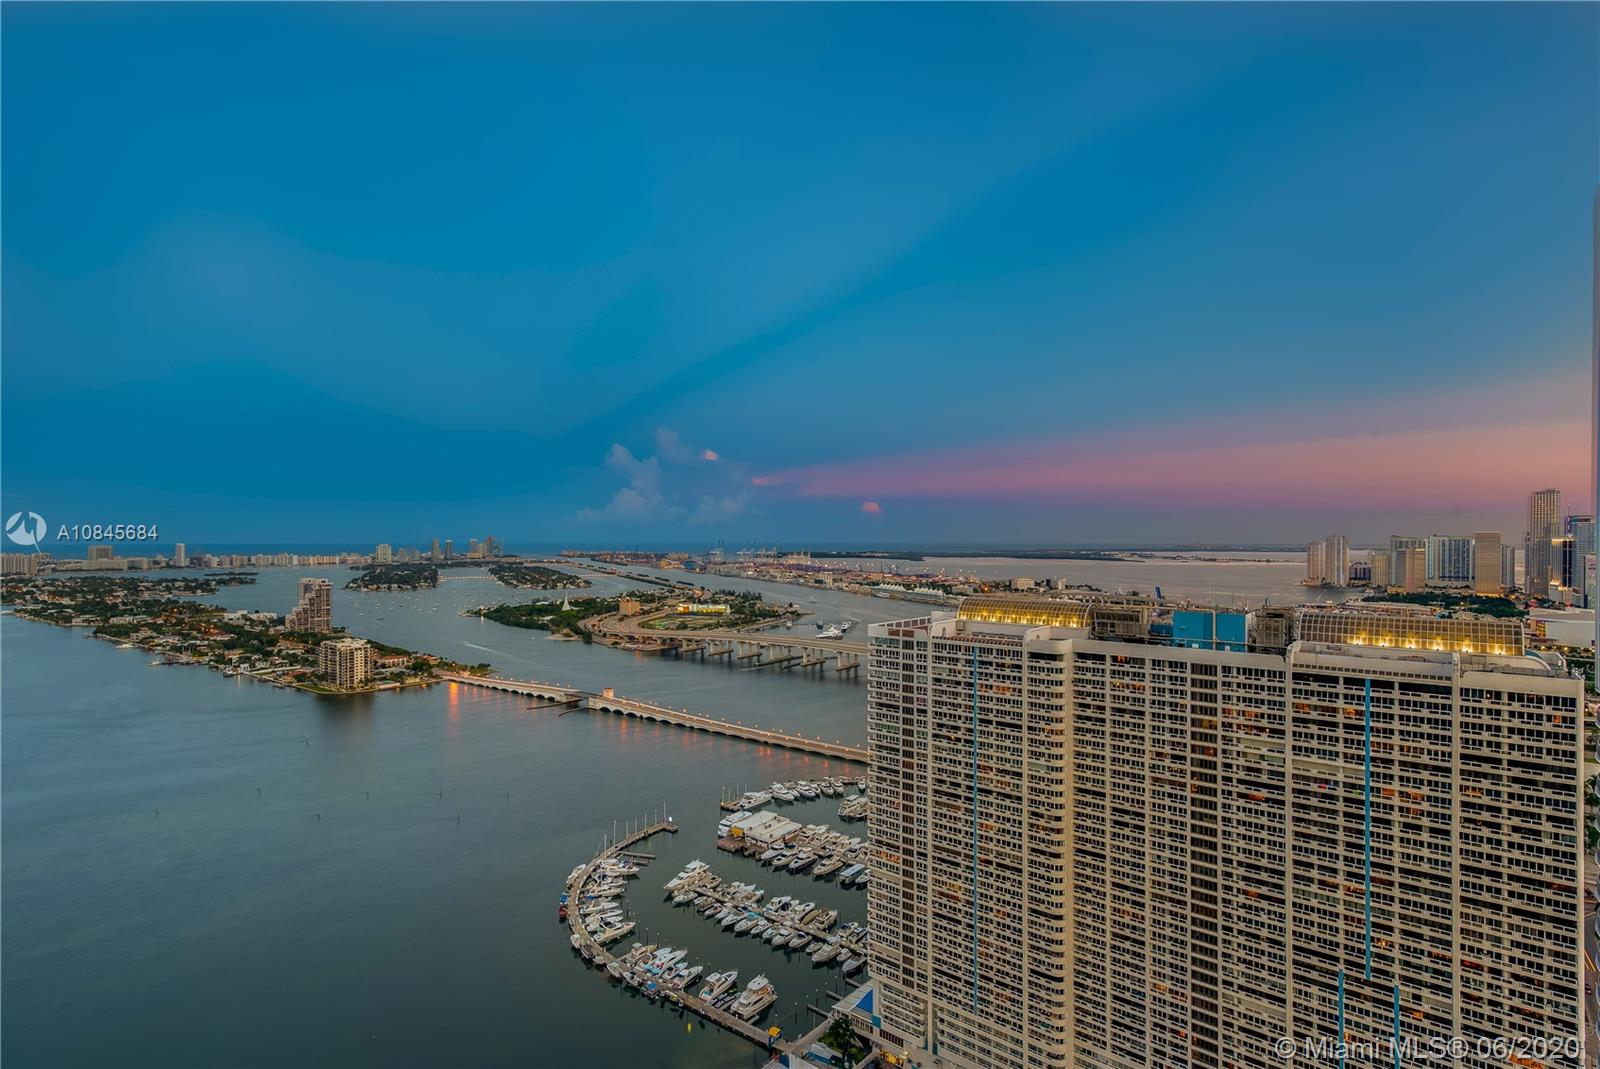 488 NE 18th St # 4410, Miami, Florida 33132, 3 Bedrooms Bedrooms, ,4 BathroomsBathrooms,Residential,For Sale,488 NE 18th St # 4410,A10845684